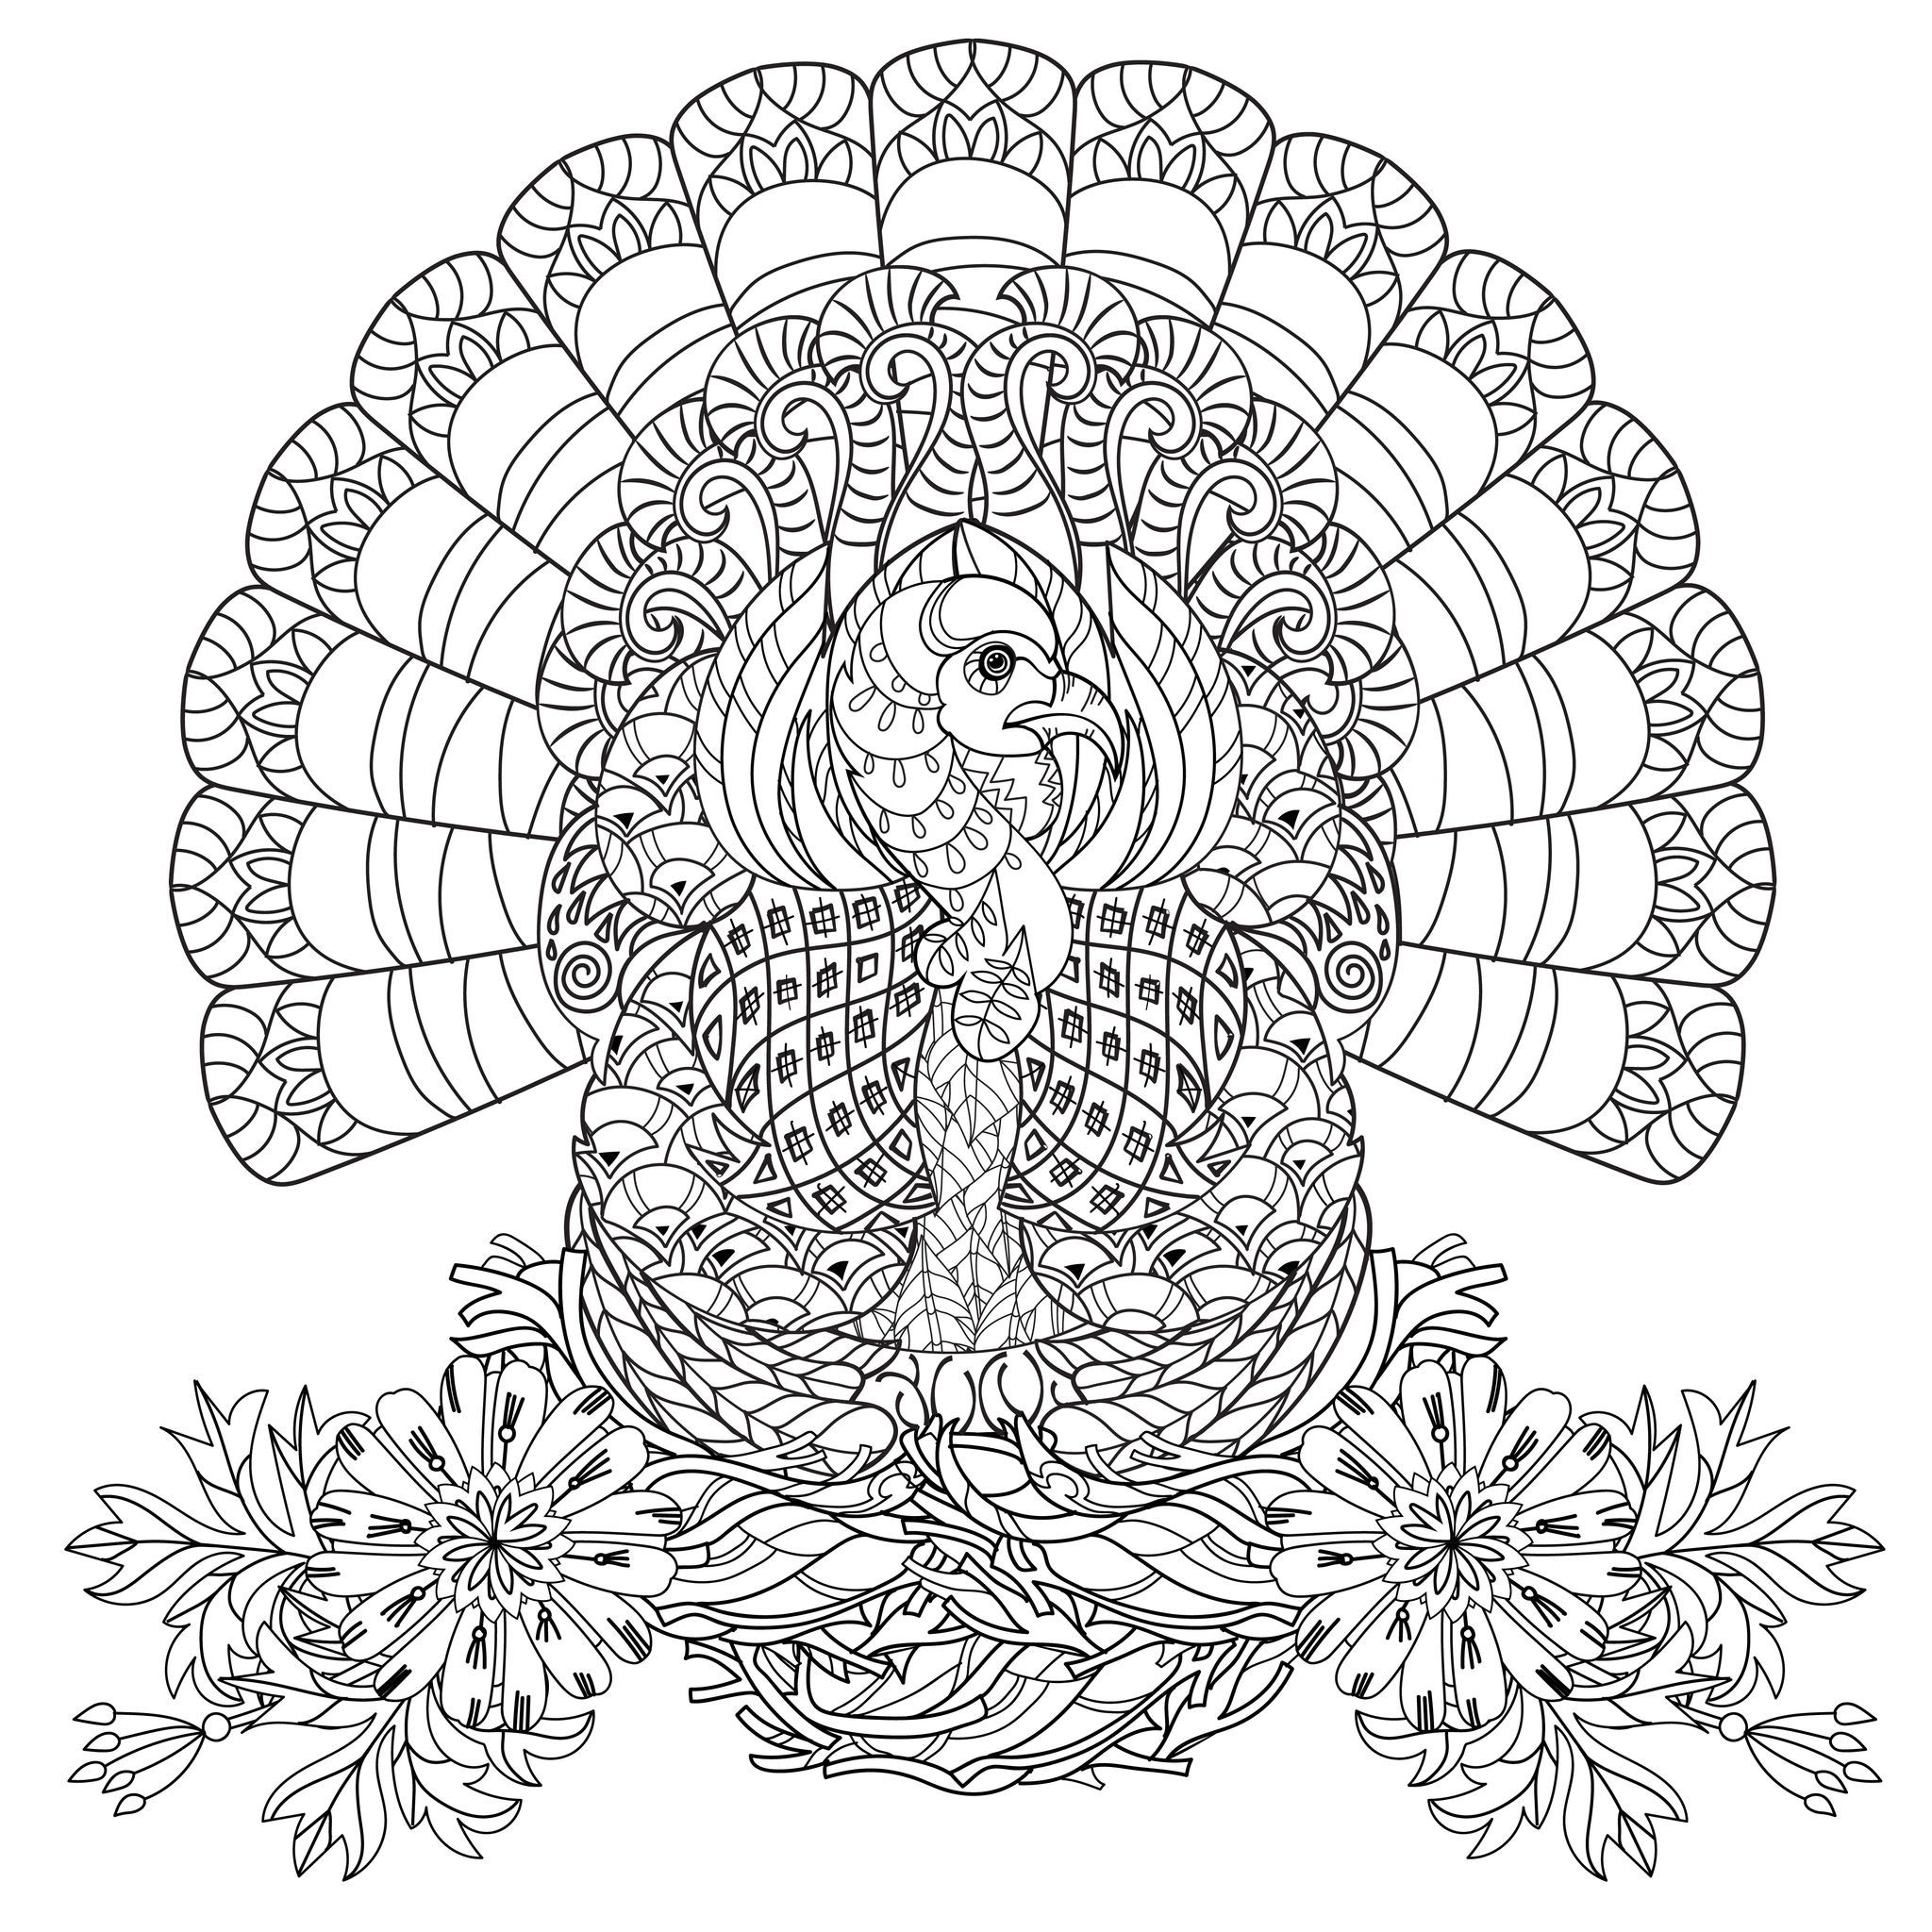 thanksgiving coloring pages for adults - thanksgiving adult coloring pages image=events thanksgiving coloring adult thanksgiving turkey 1